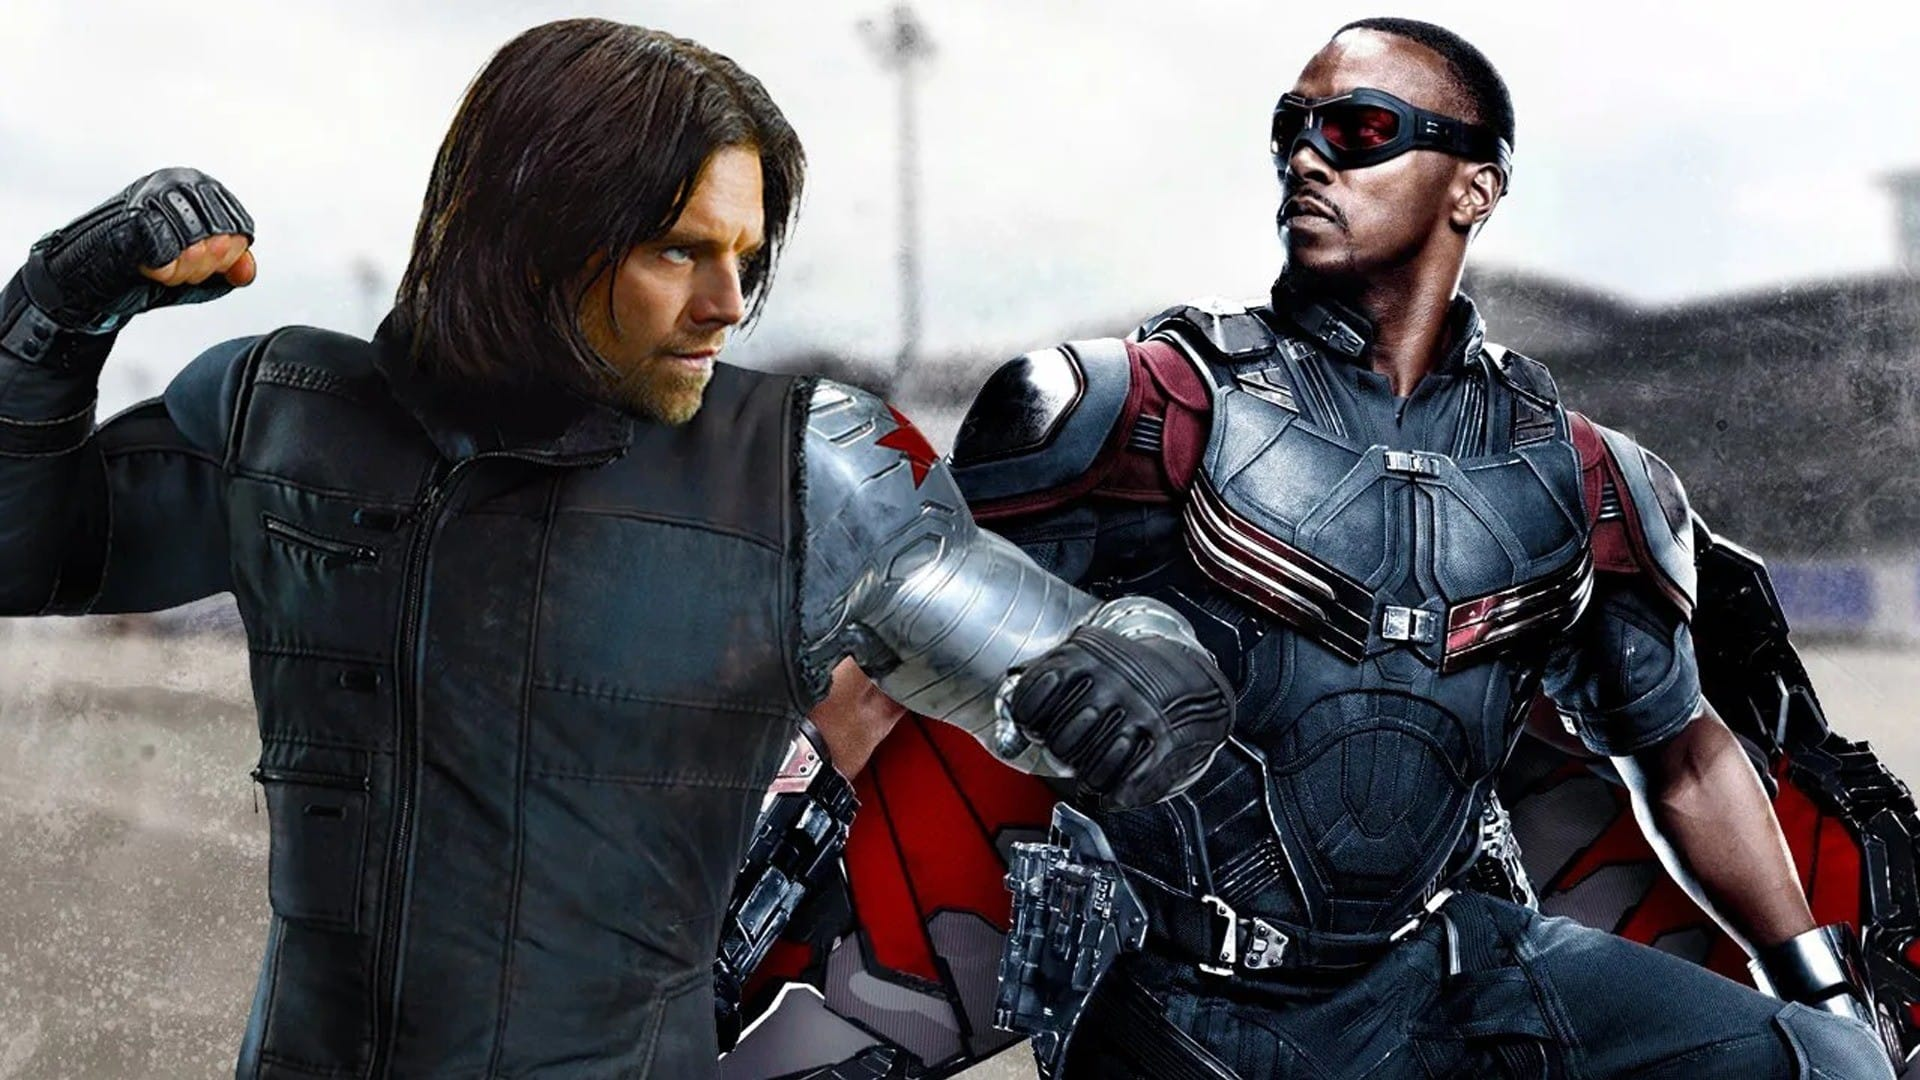 mcu seriál The Falcon and the Winter Soldier